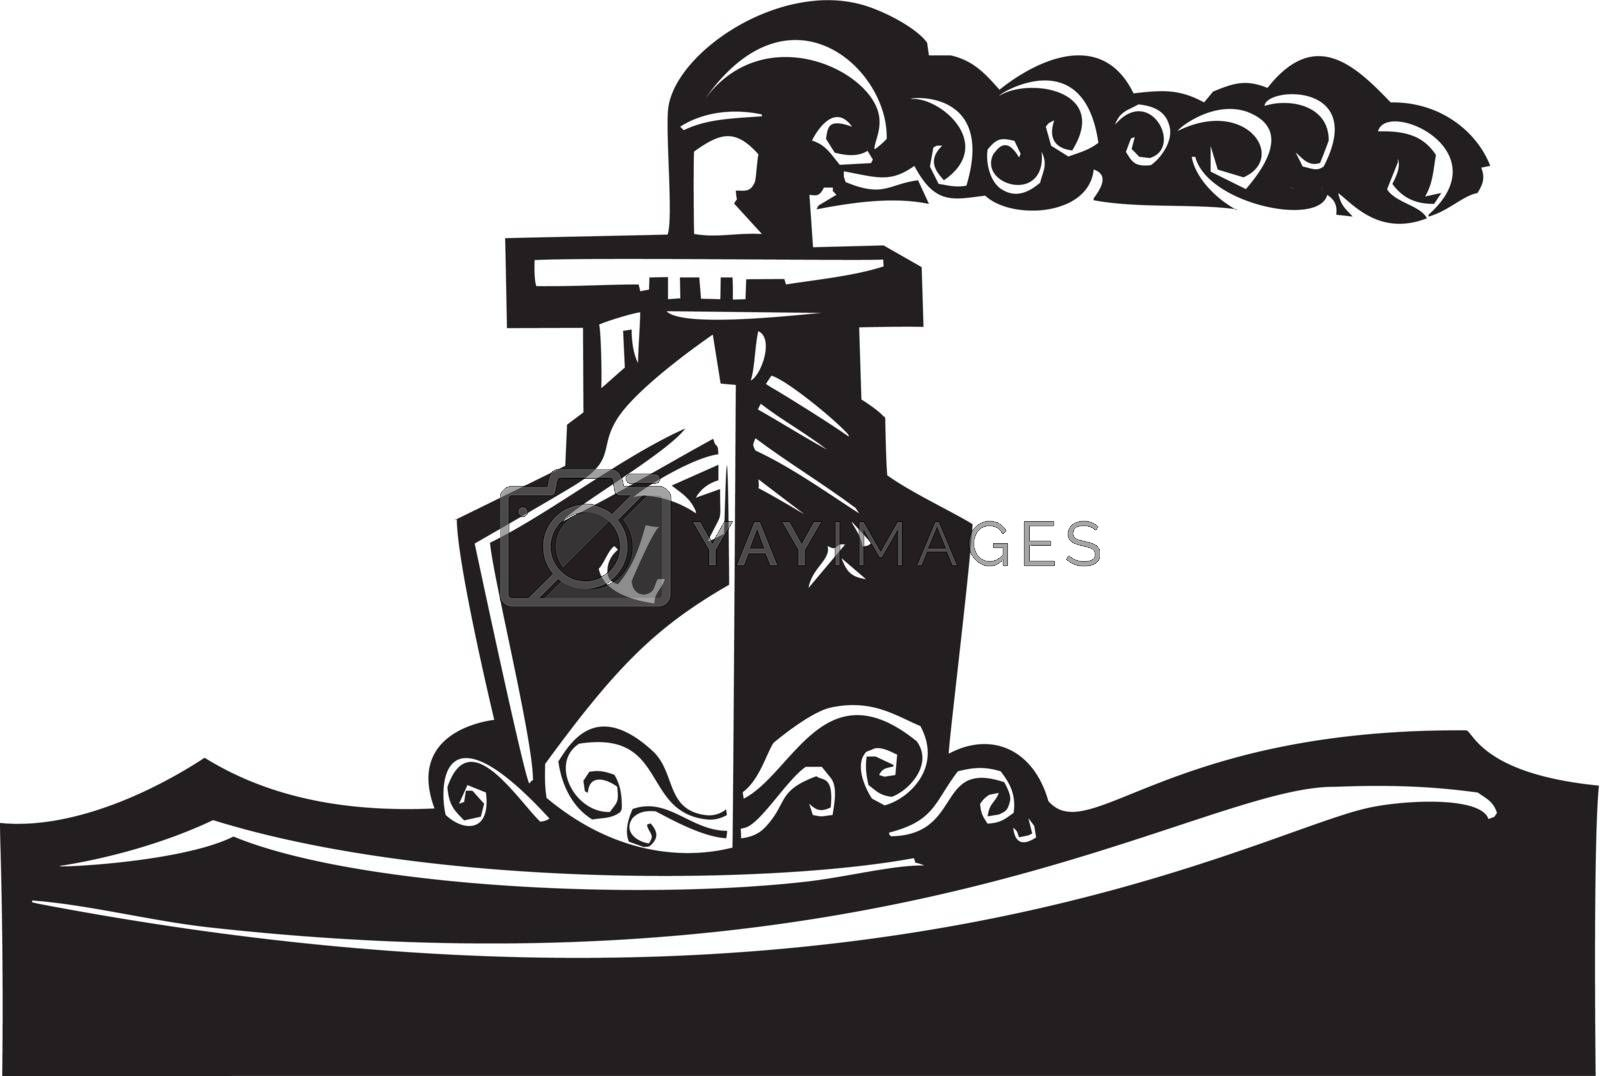 Woodcut style image of a art deco steam ship on the ocean.